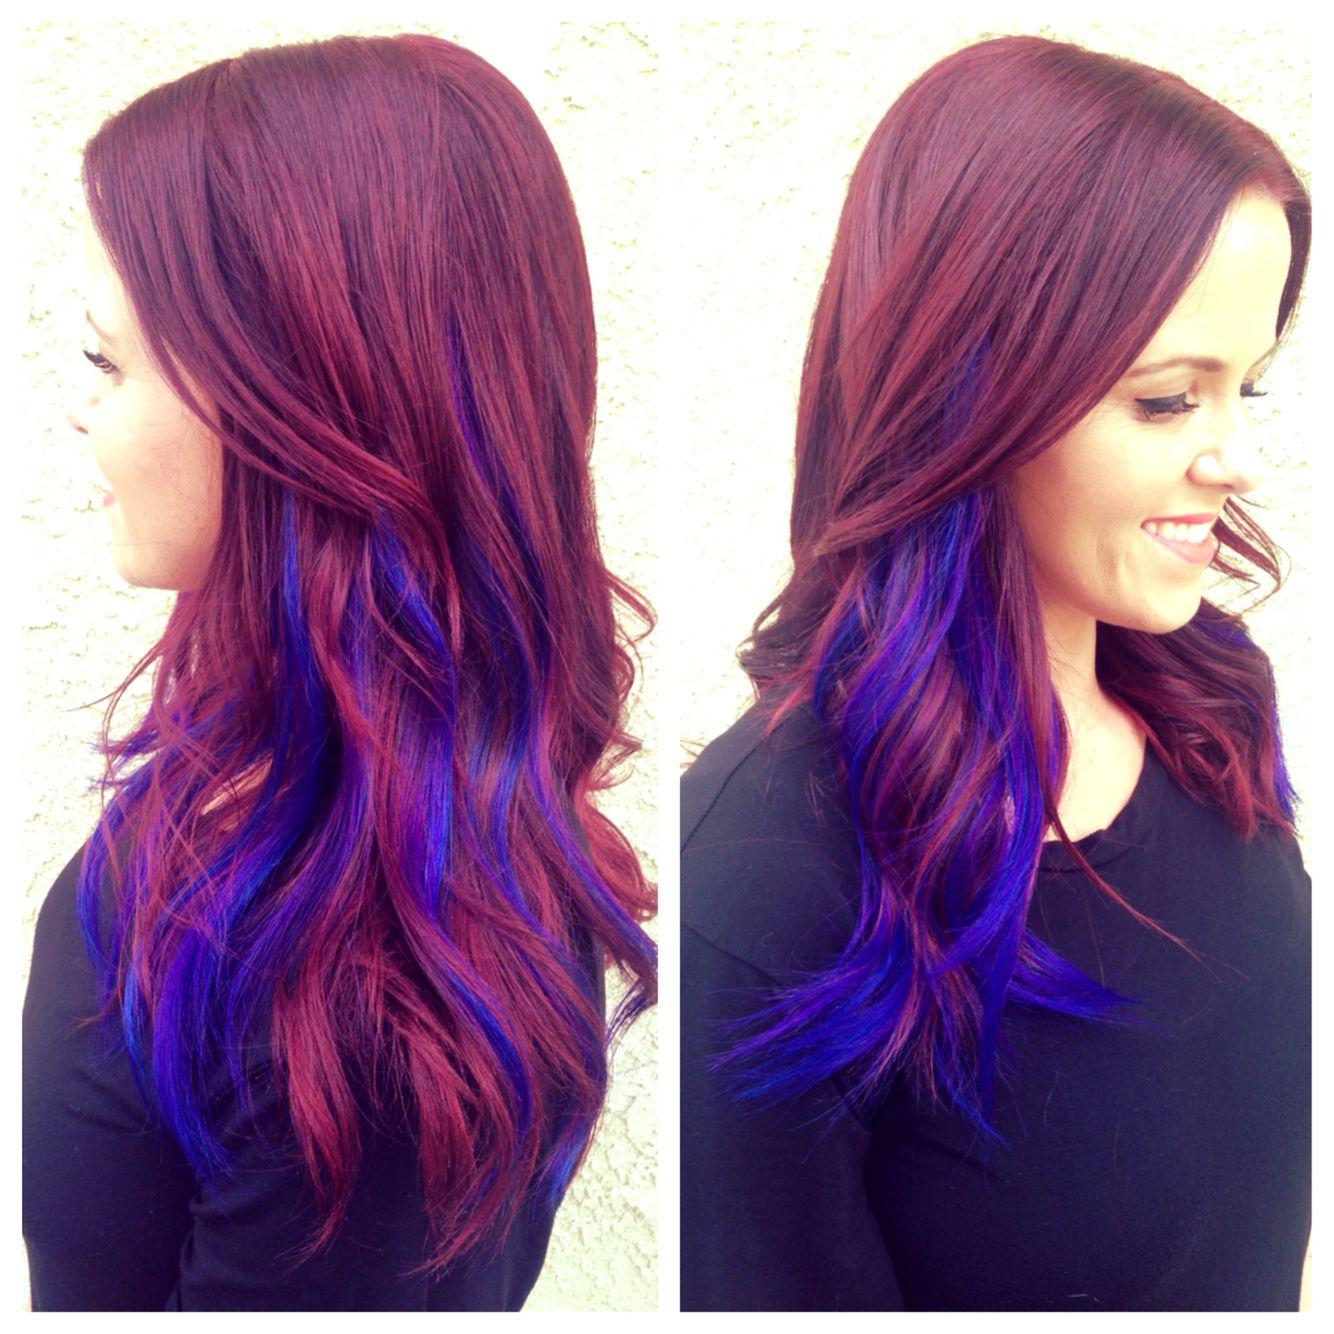 Violet hair extensions